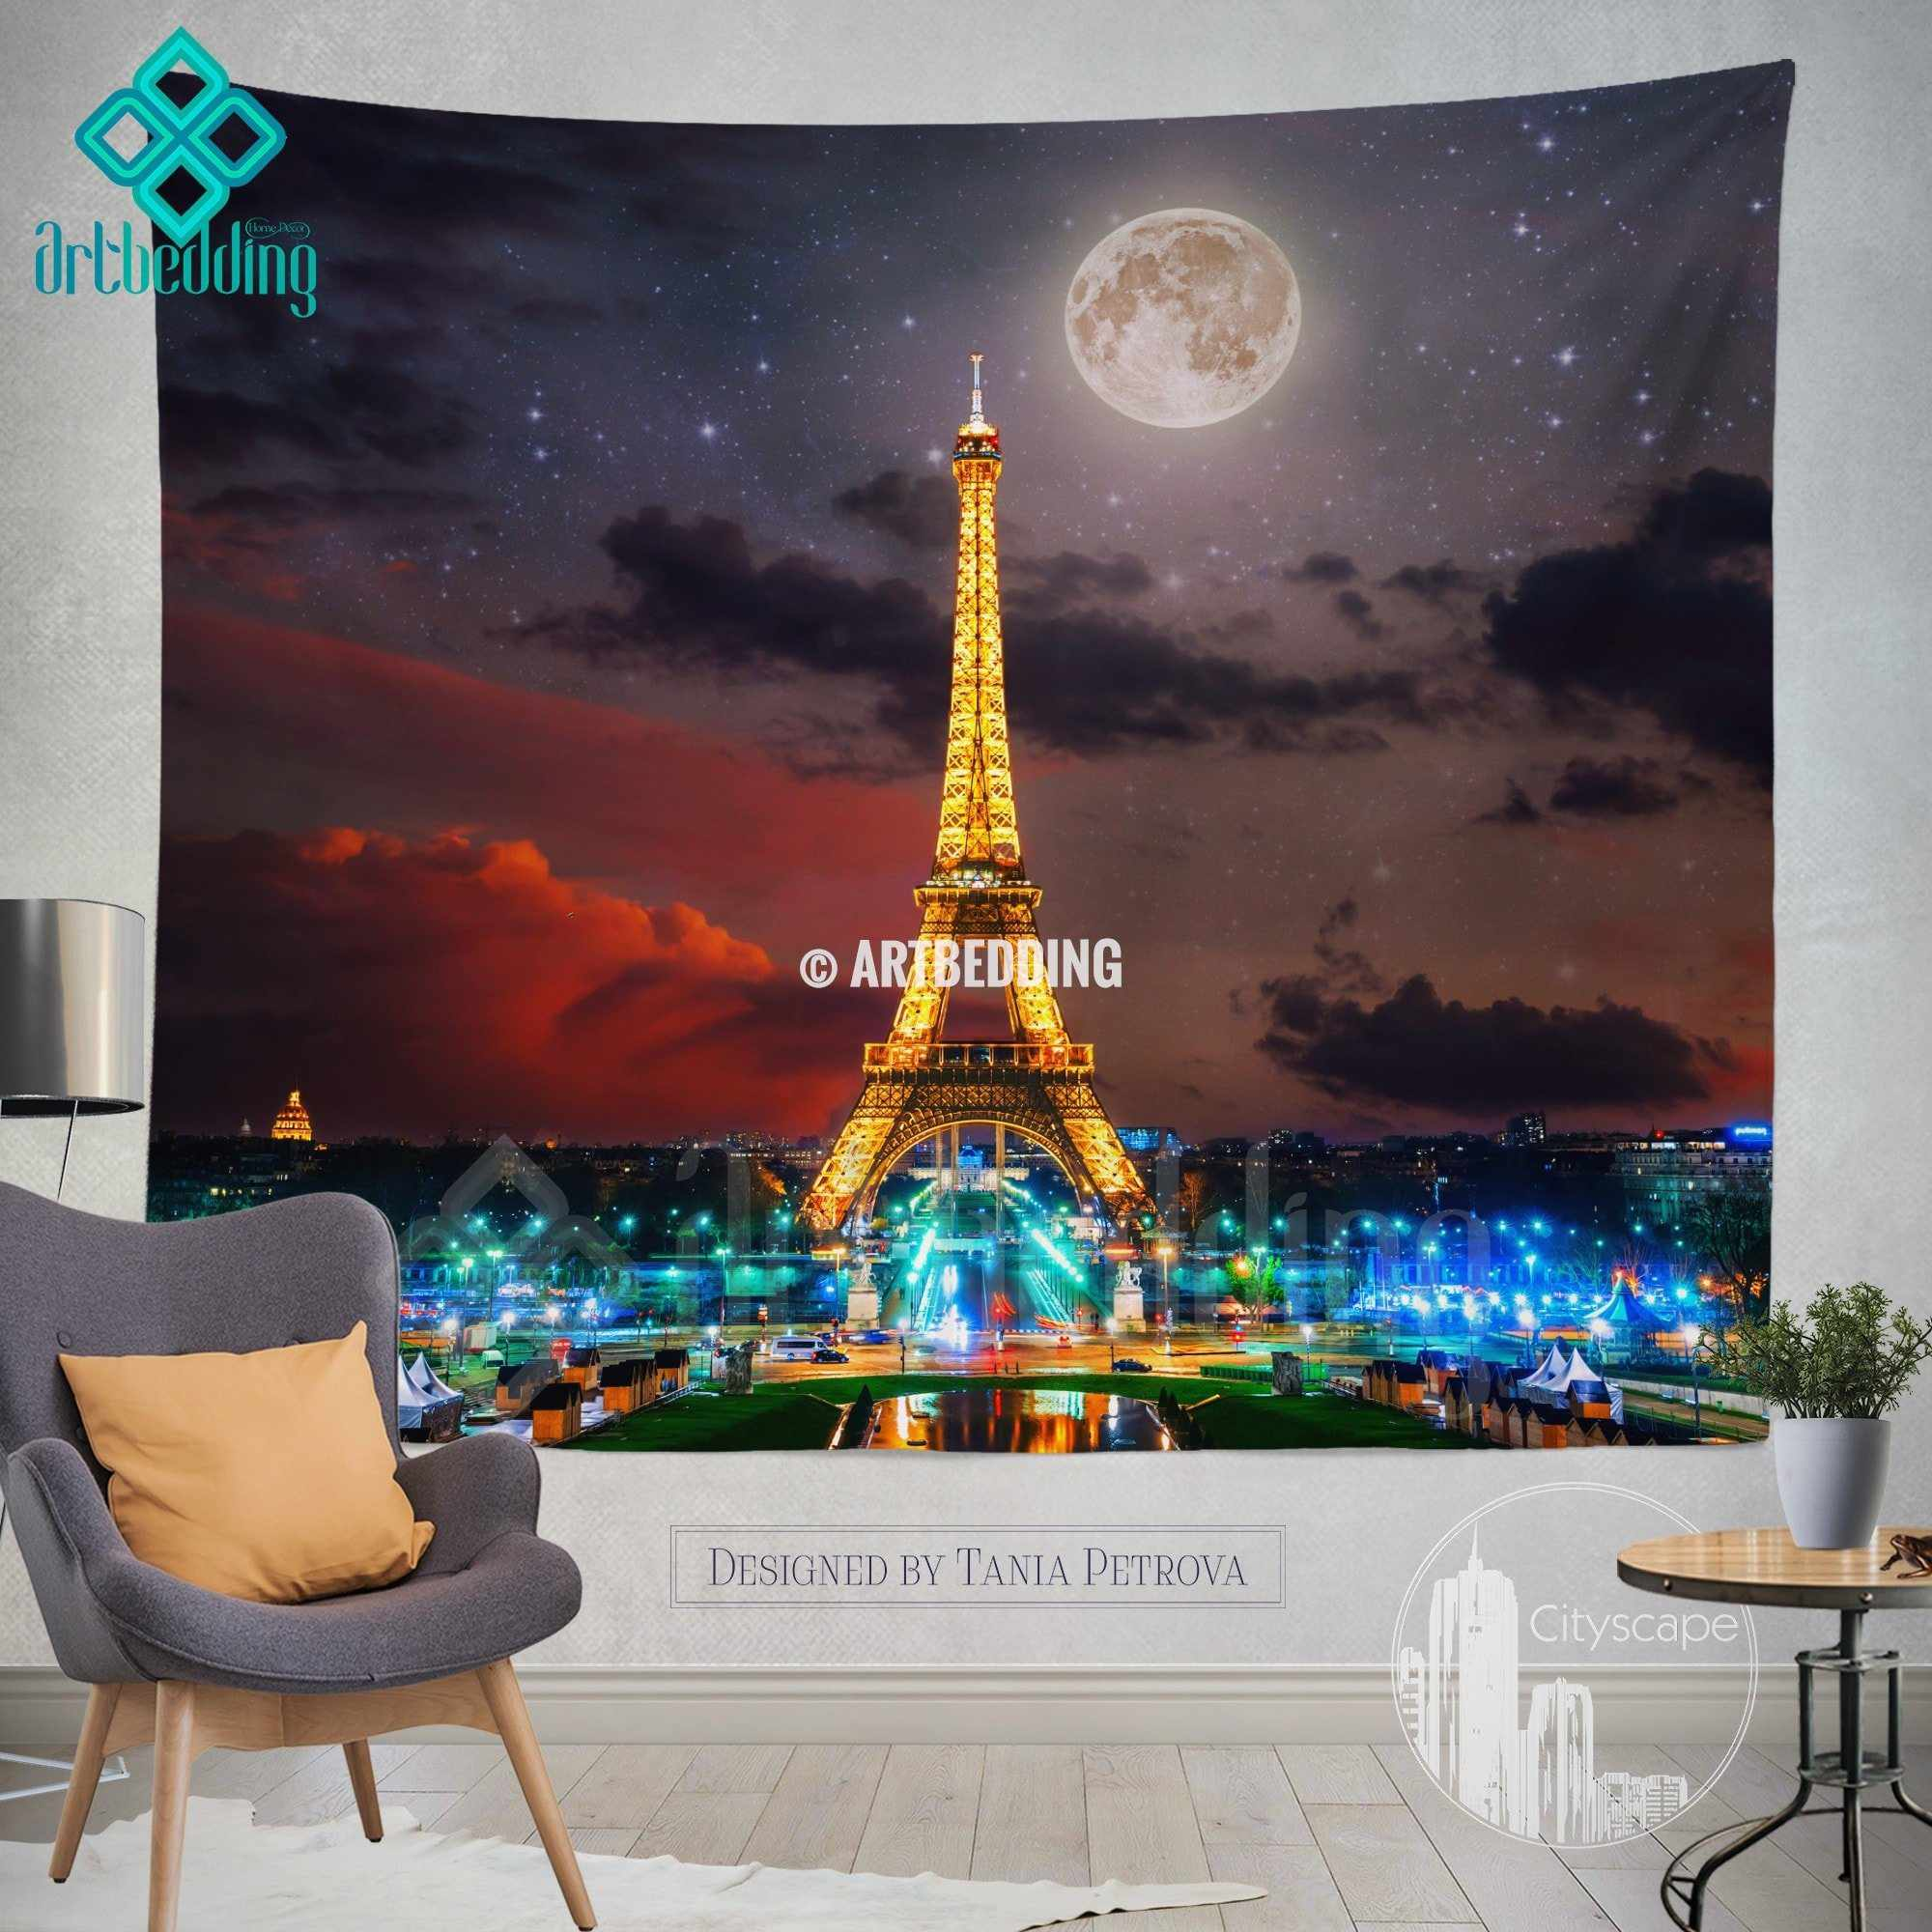 wall murals wall tapestries canvas wall art wall decor tagged paris night sky with fool moon wall tapestry eifel tower at night with stars wall tapestry paris golden lights wall decor paris cityscape interior